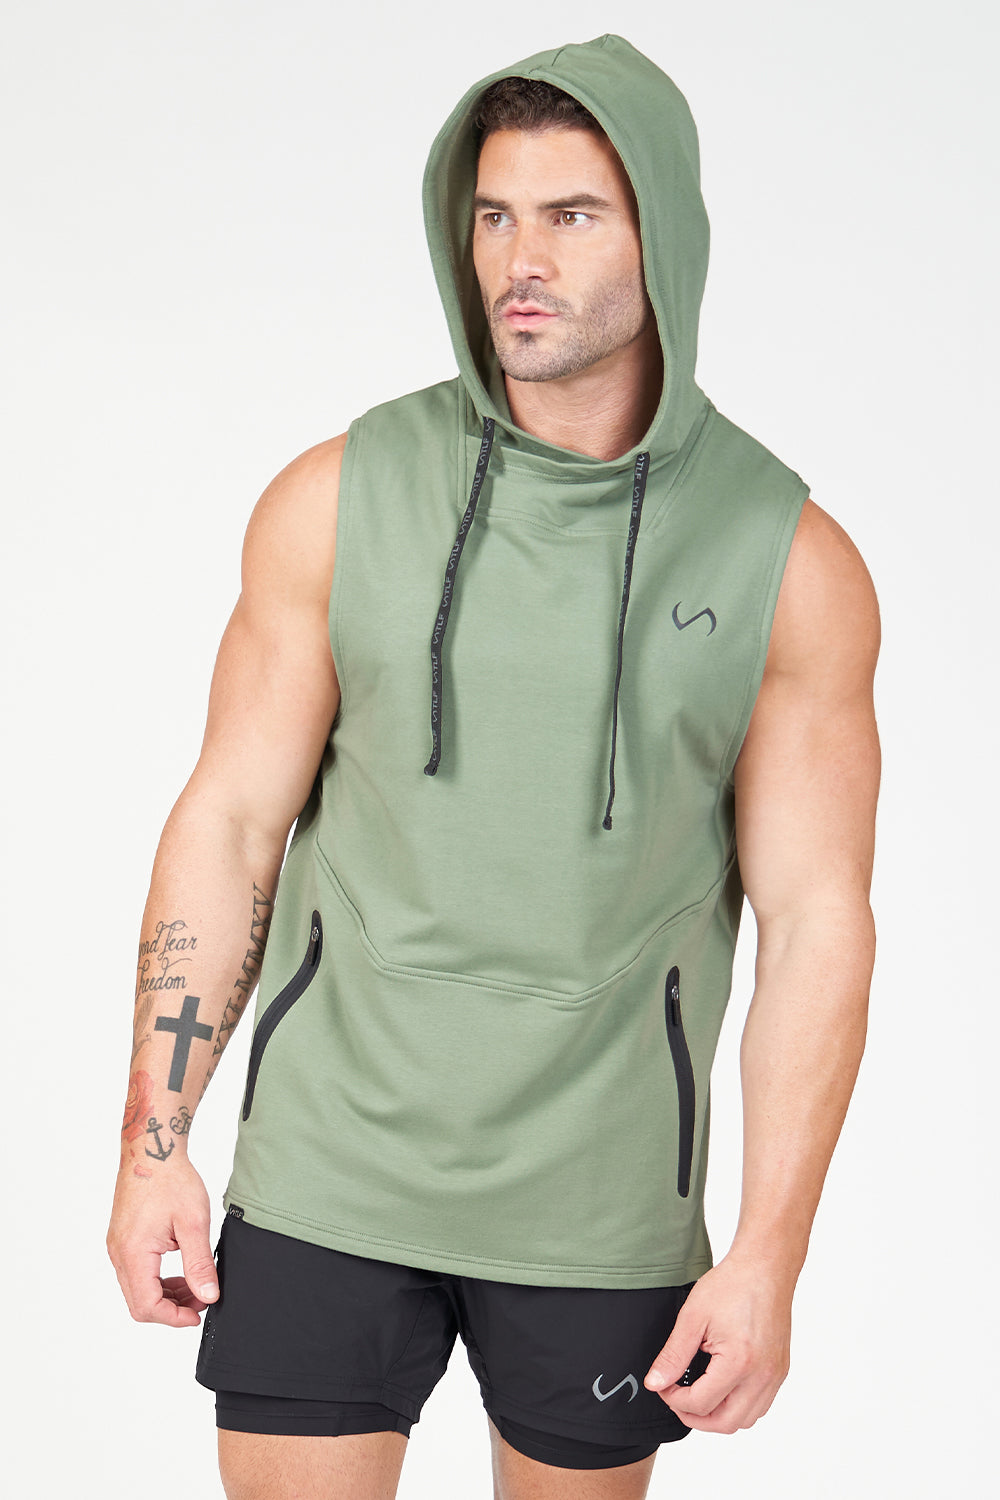 TLF Air-Flex Sleeveless Gym Hoodie - TLF Apparel | Take Life Further